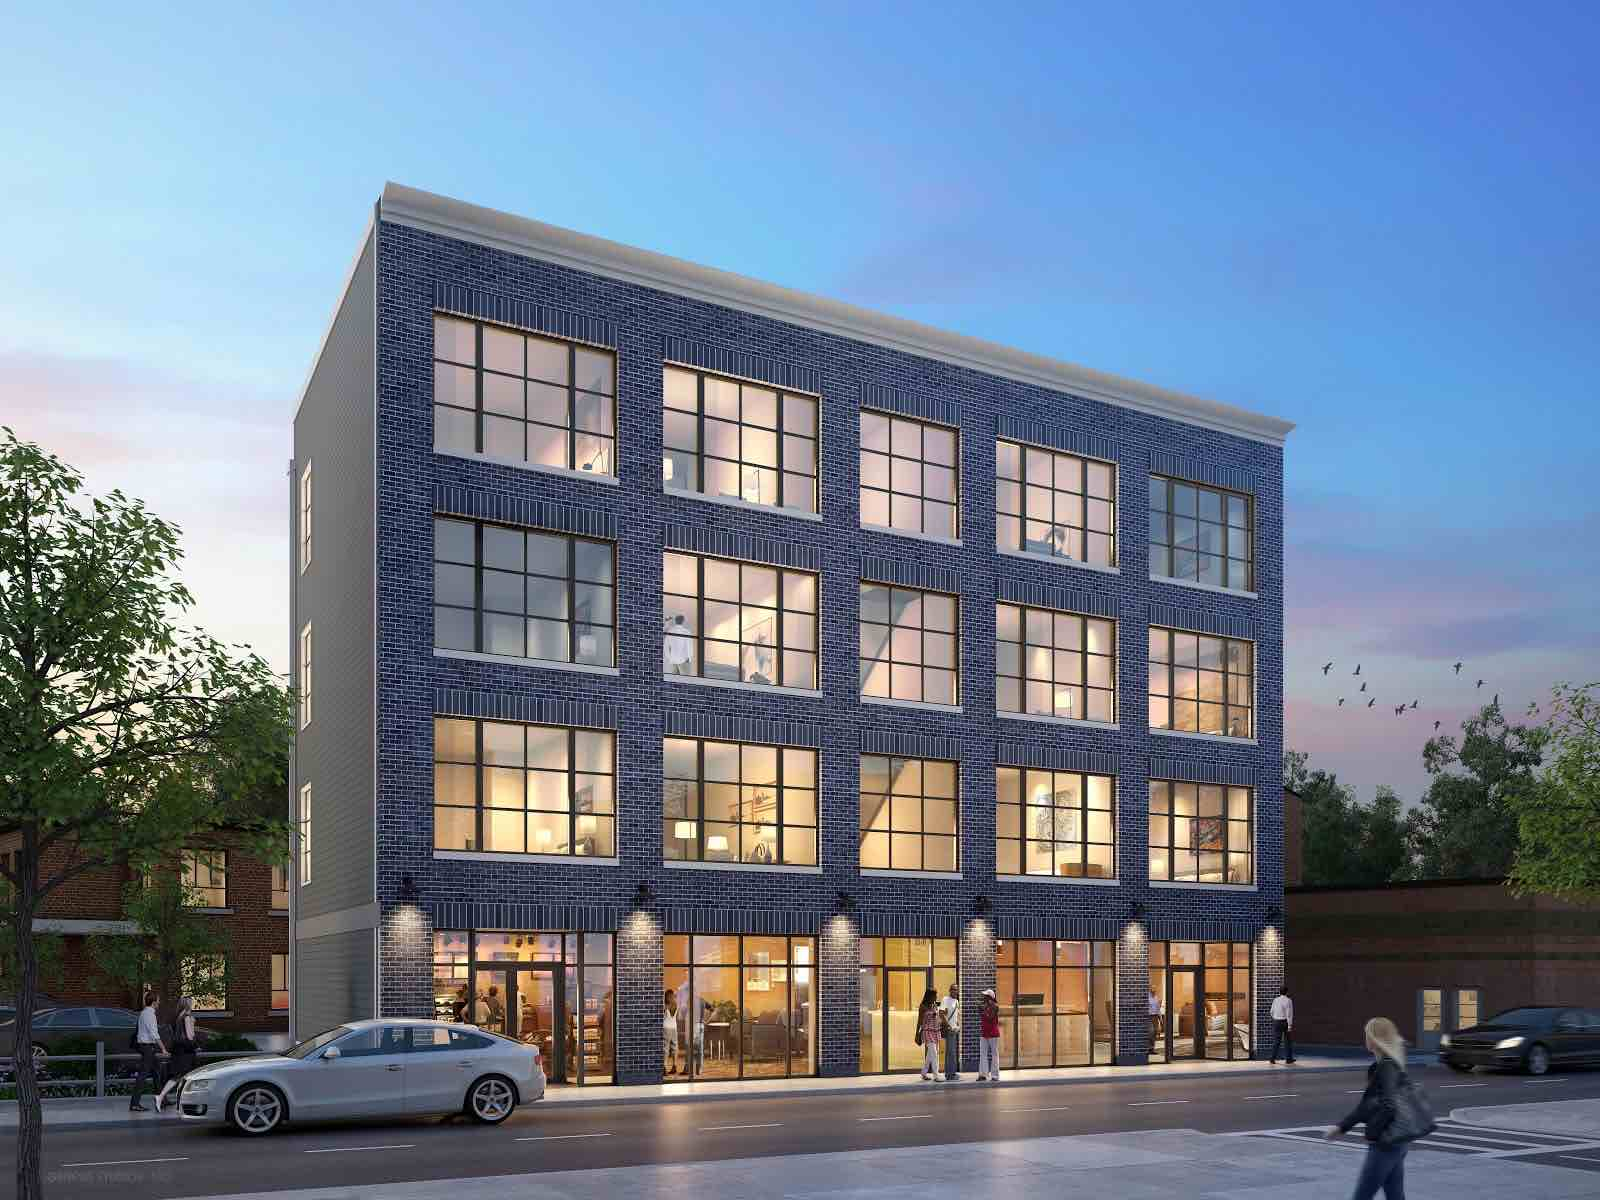 7 burroughs street residential condominium retail development jamaica plain boston